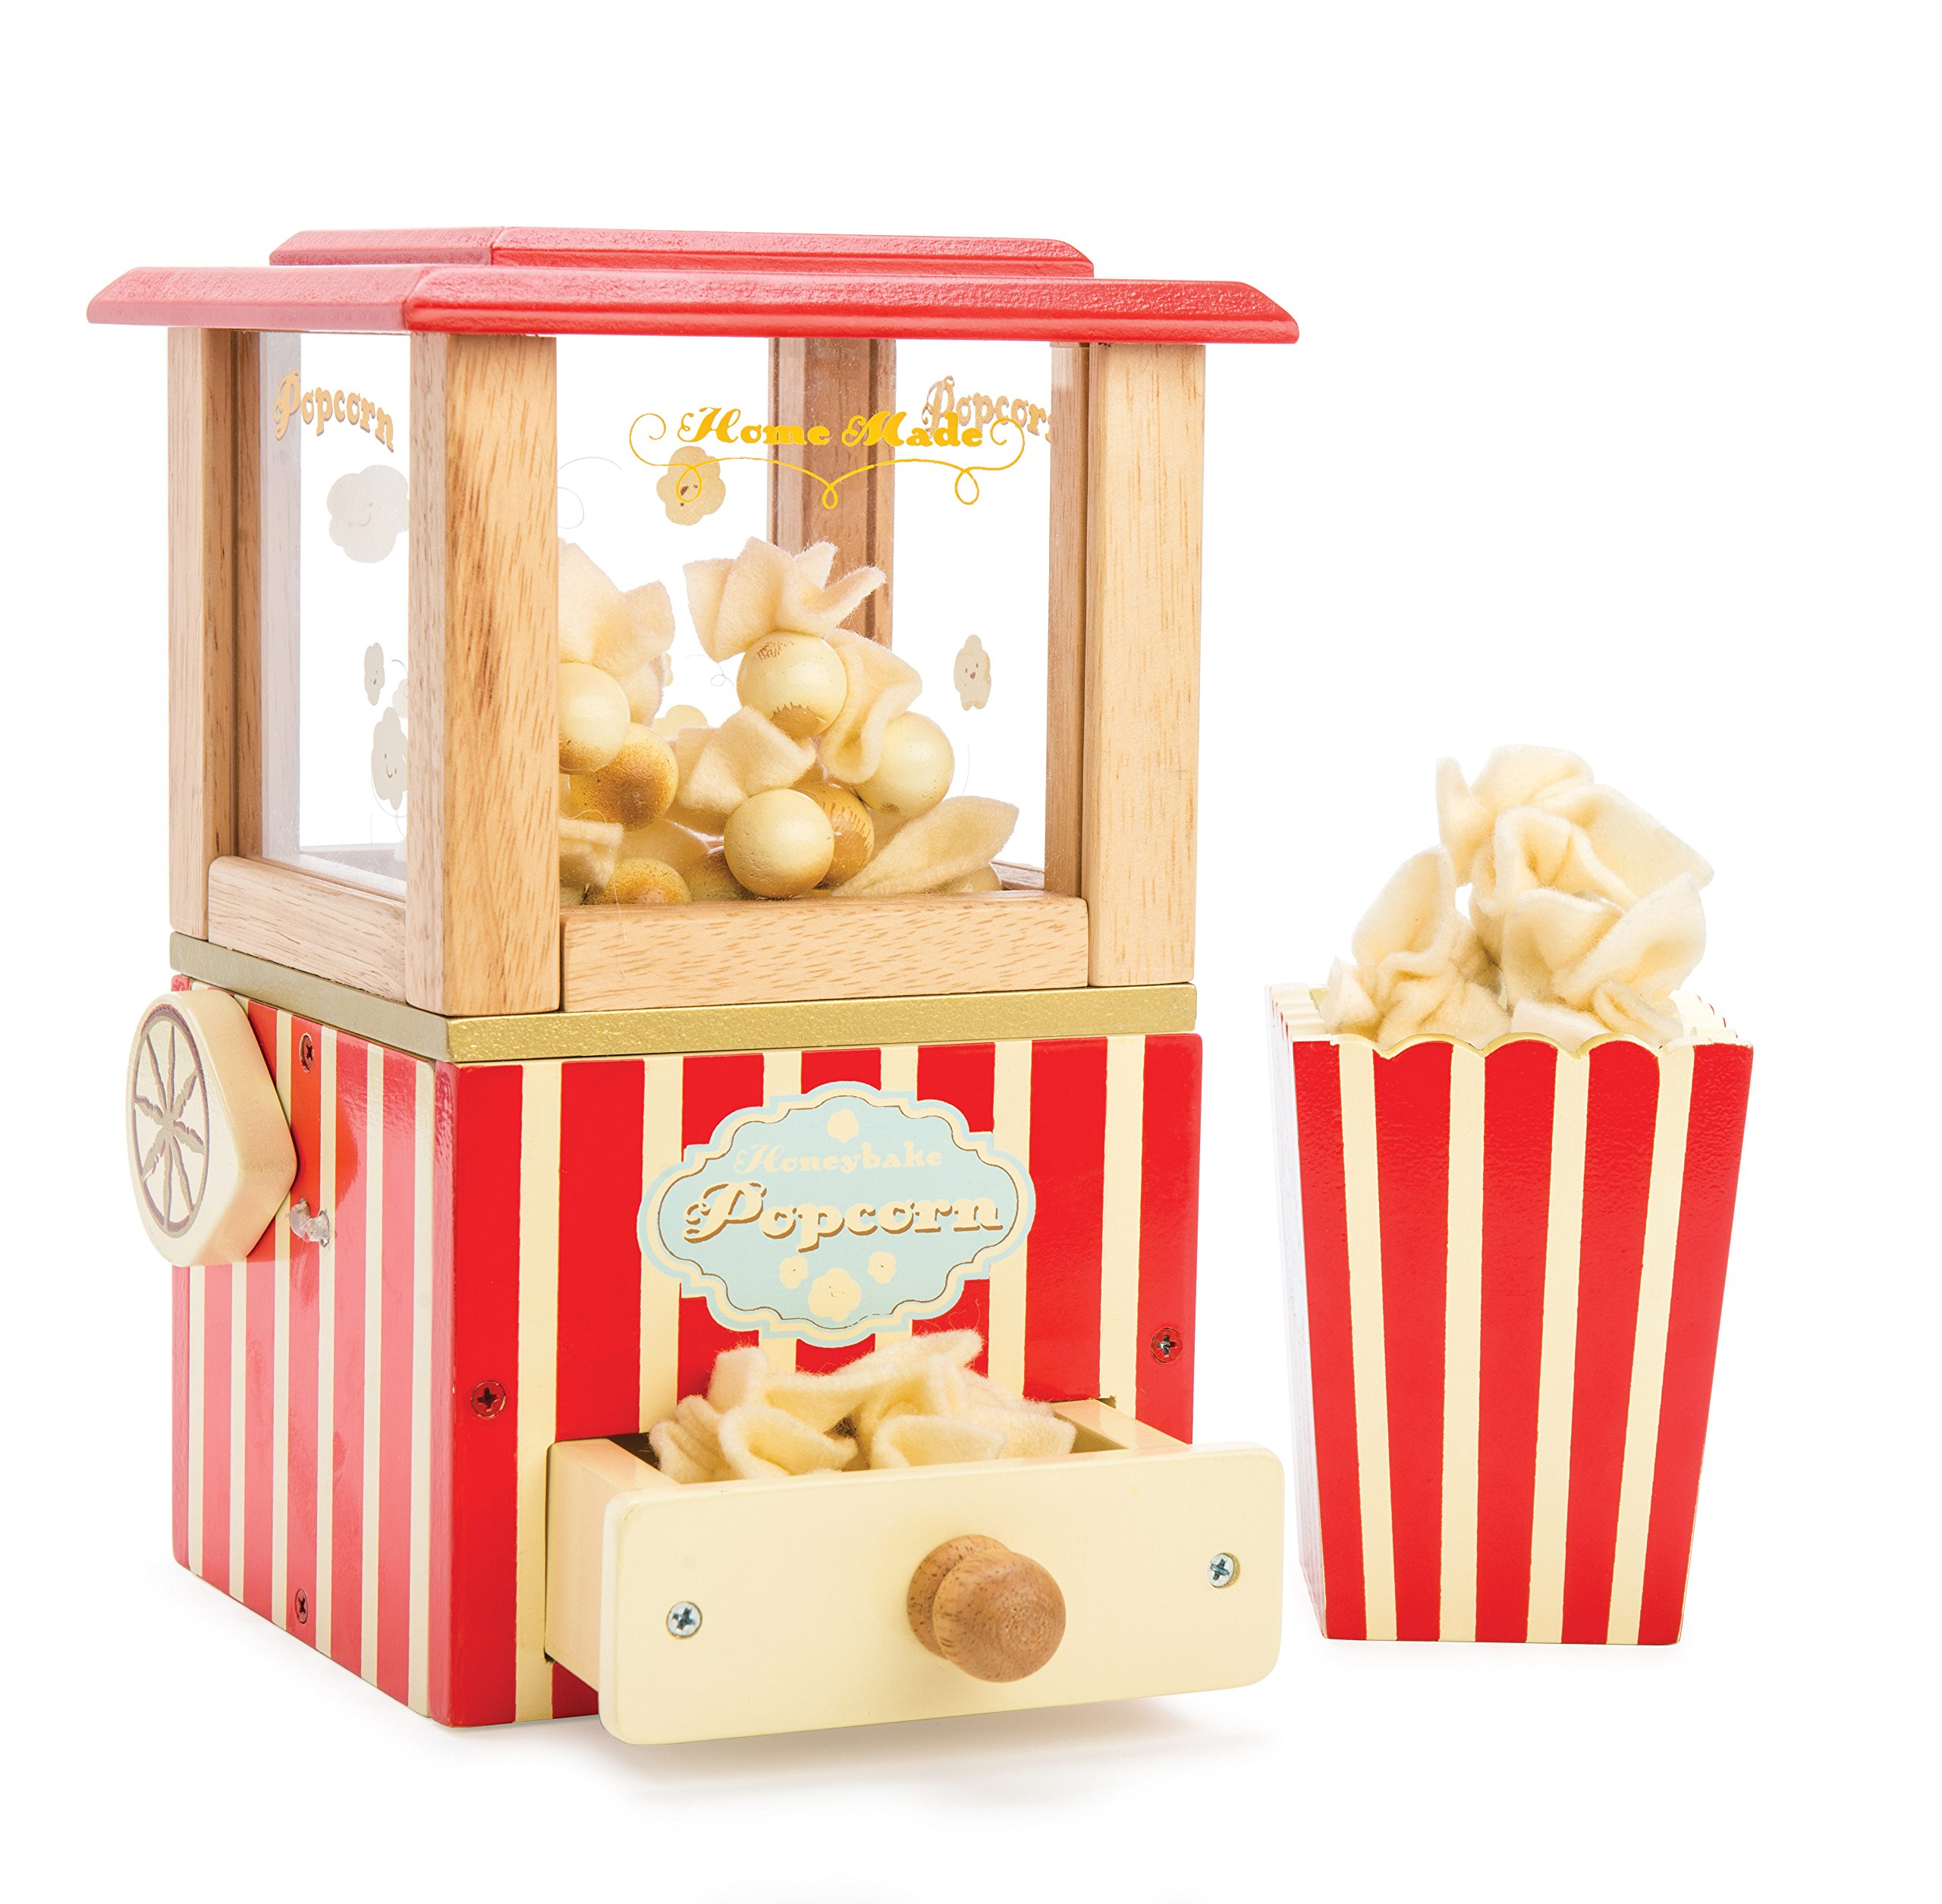 Le Toy Van Honeybake Collection Popcorn Machine Set Premium Wooden Toys for Kids Ages 3 Years & Up